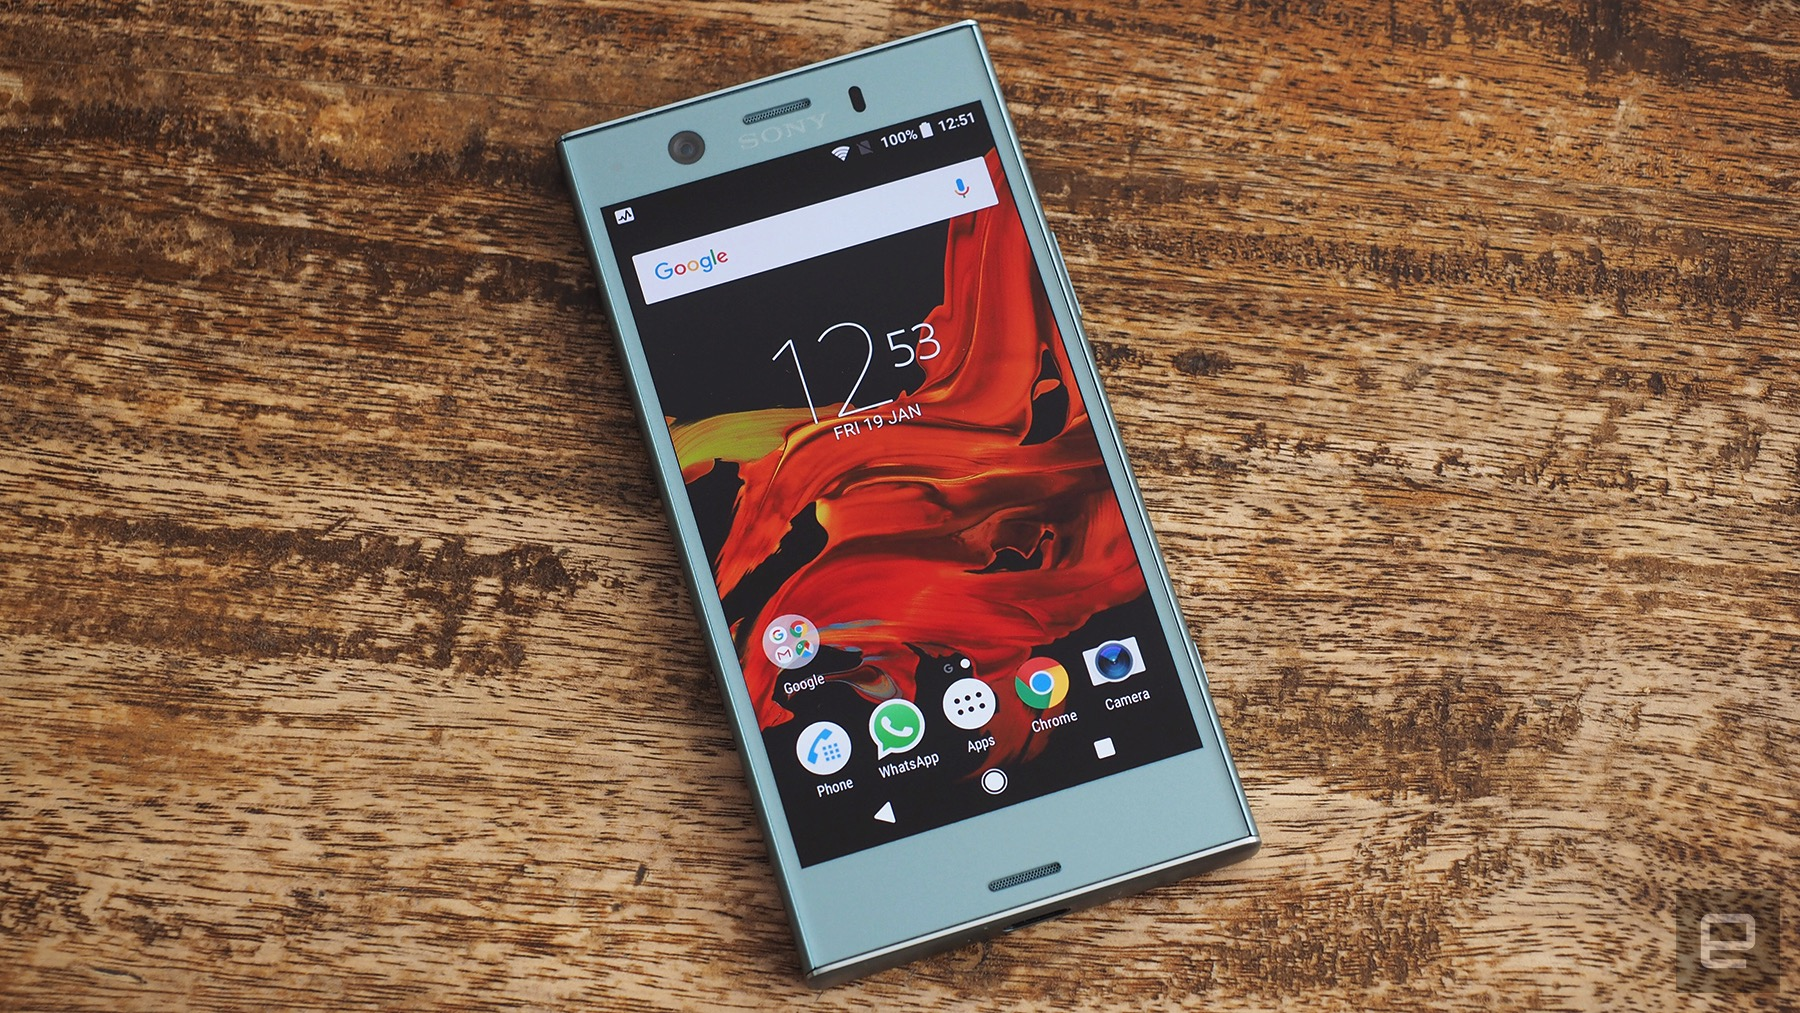 Sony Xz1 Compact System Update I Really Wanted To Like Sony S Xperia Xz1 Compact